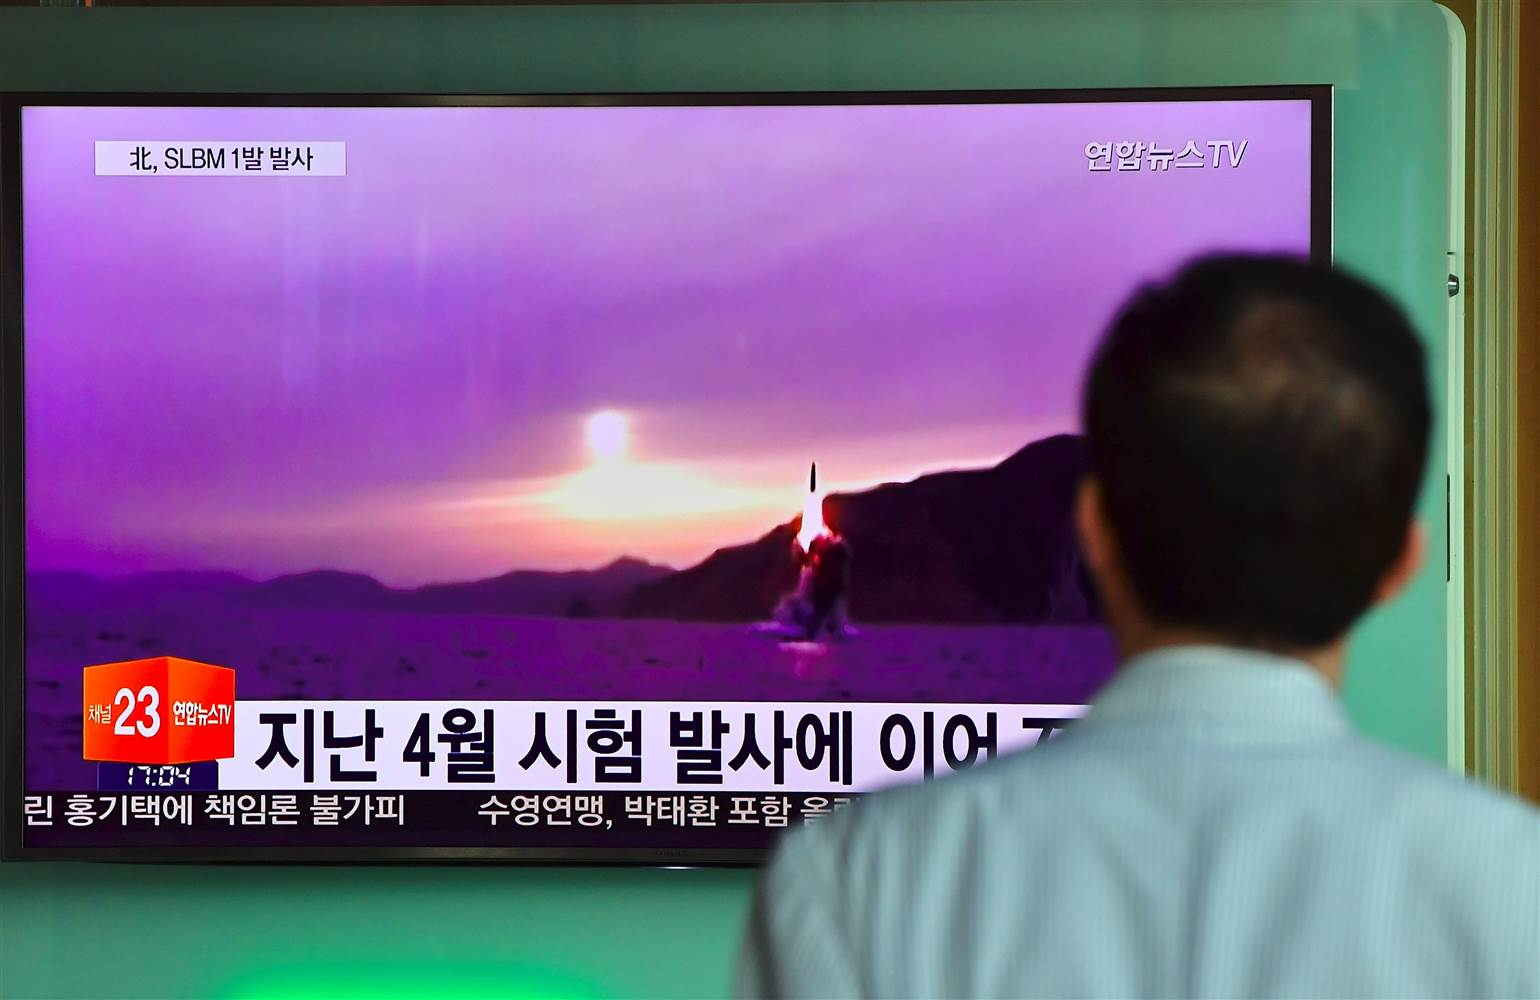 A man watches television news broadcast showing file footage of a North Korean missile launch at a railway station in Seoul, South Korea, on Saturday. JUNG YEON-JE / AFP - Getty Images